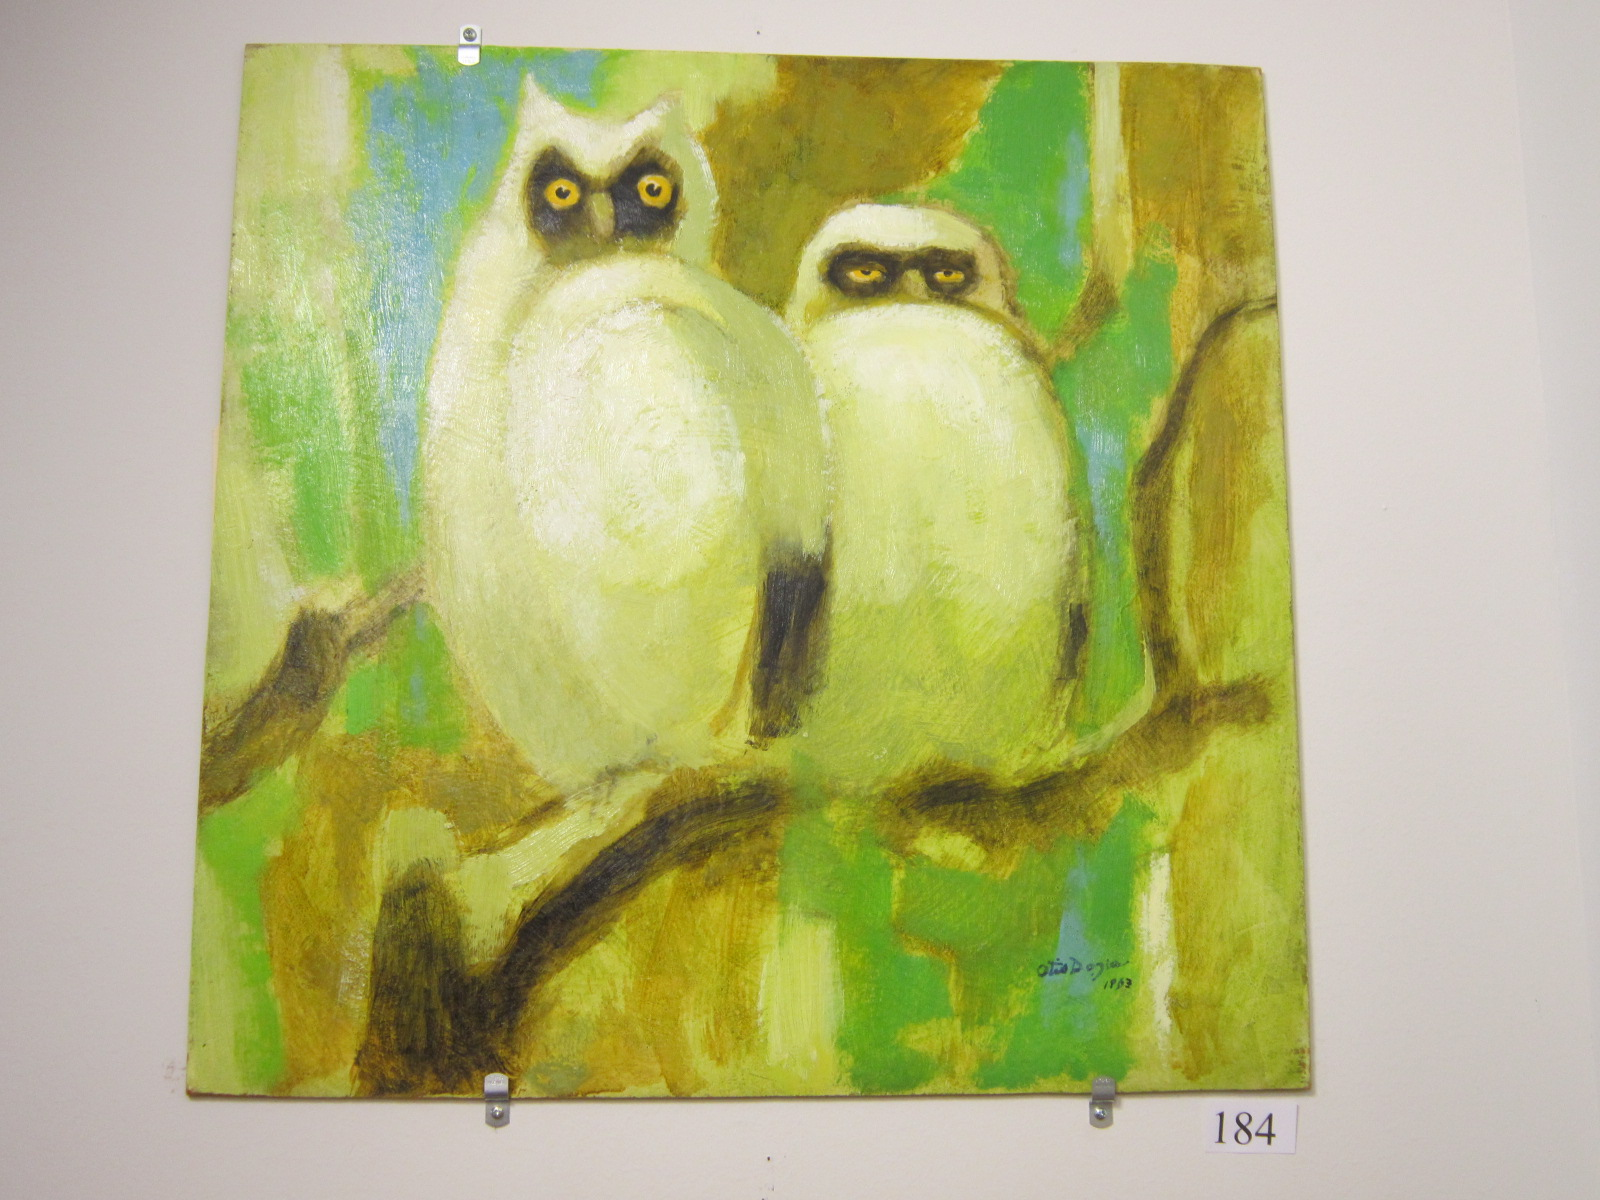 David Dike Auction early Texas Art Young Owls, Otis Dozier 1963, Texas Art Auction David Dike Early Texas Art